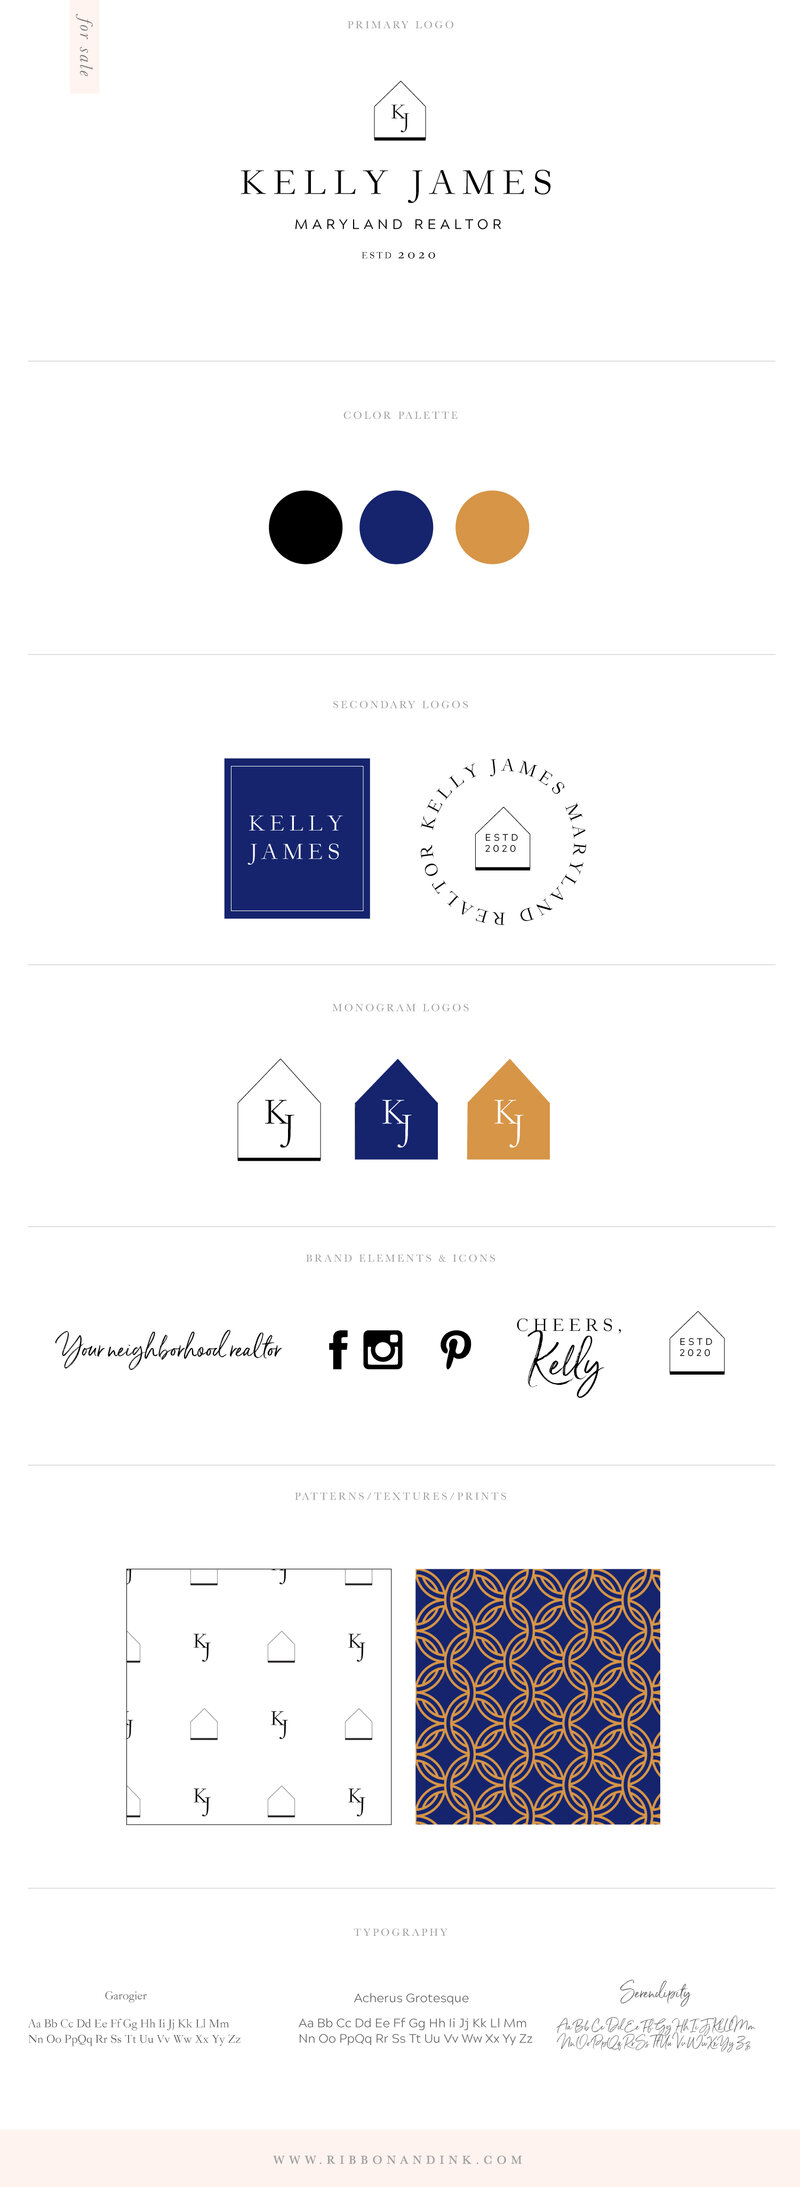 branding-for-realtors-logo-kit-brand-identity-board-for-creatives-wedding-businesses-Kelly_Realtor_BrandBoard_v01